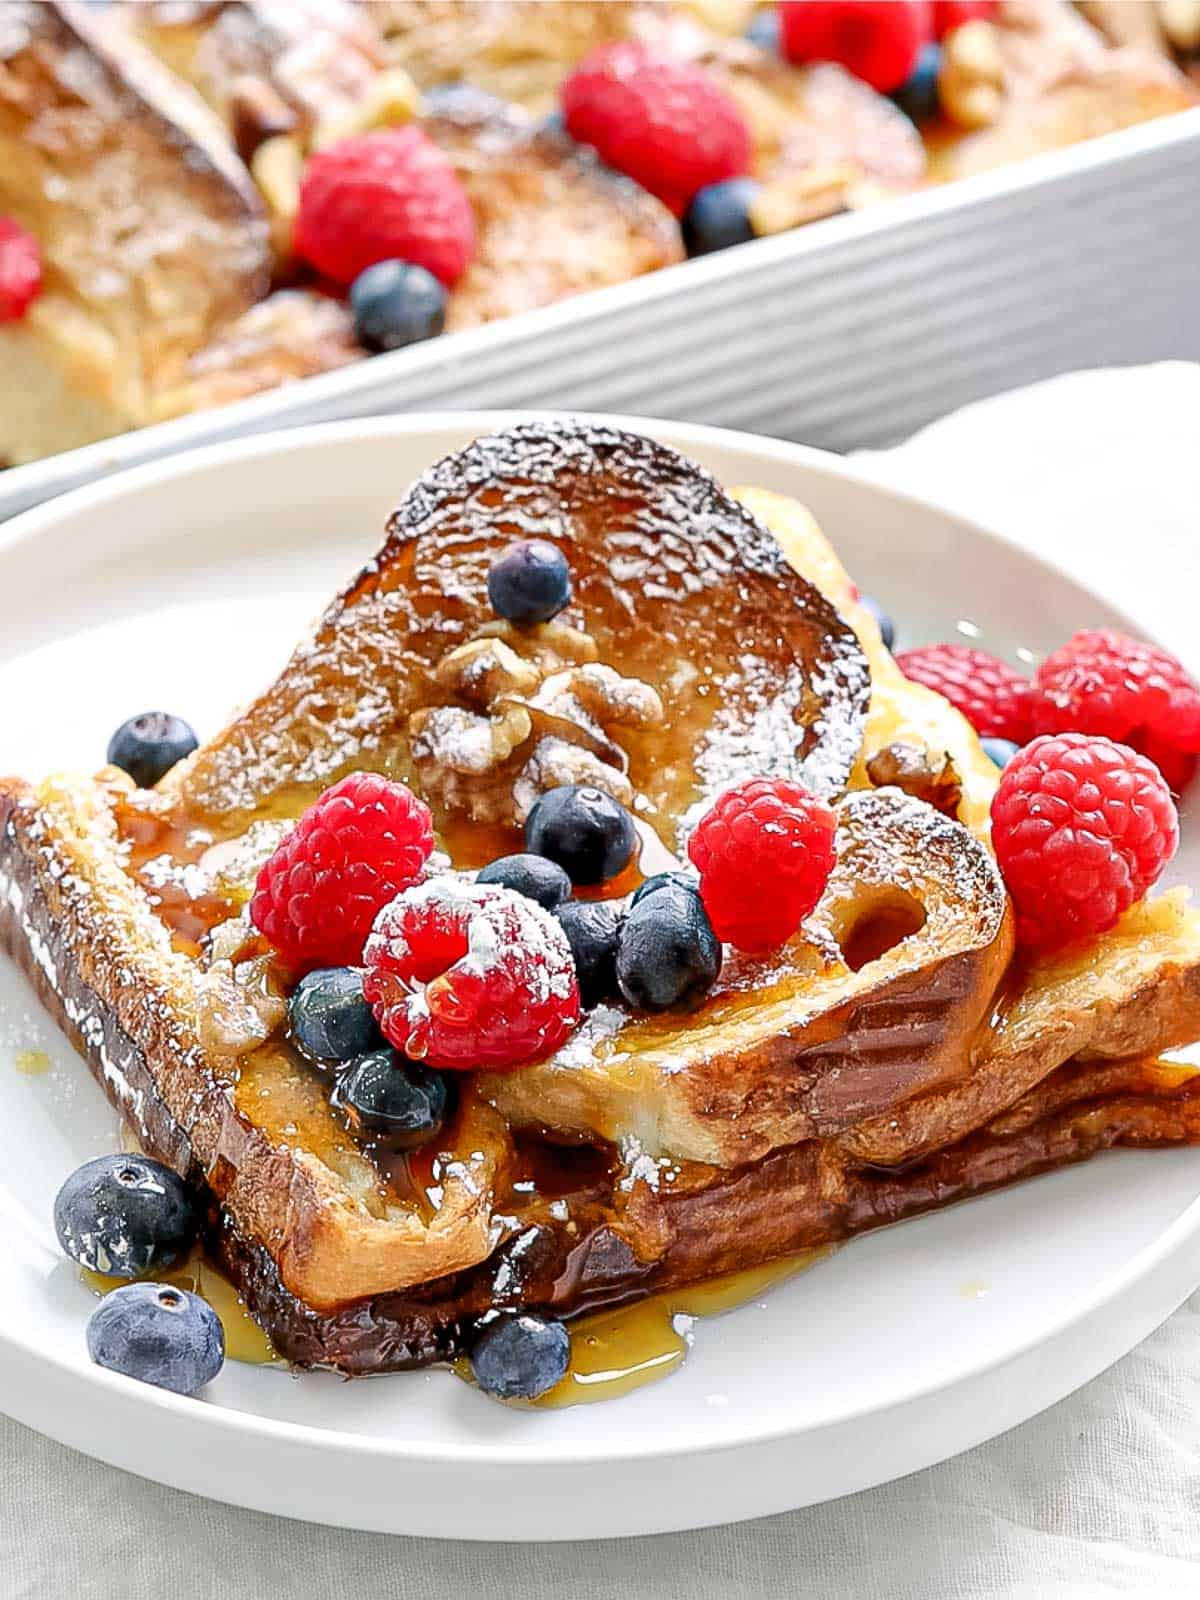 Slice of baked french toast with blueberries, raspberries and powdered sugar on a white plate.